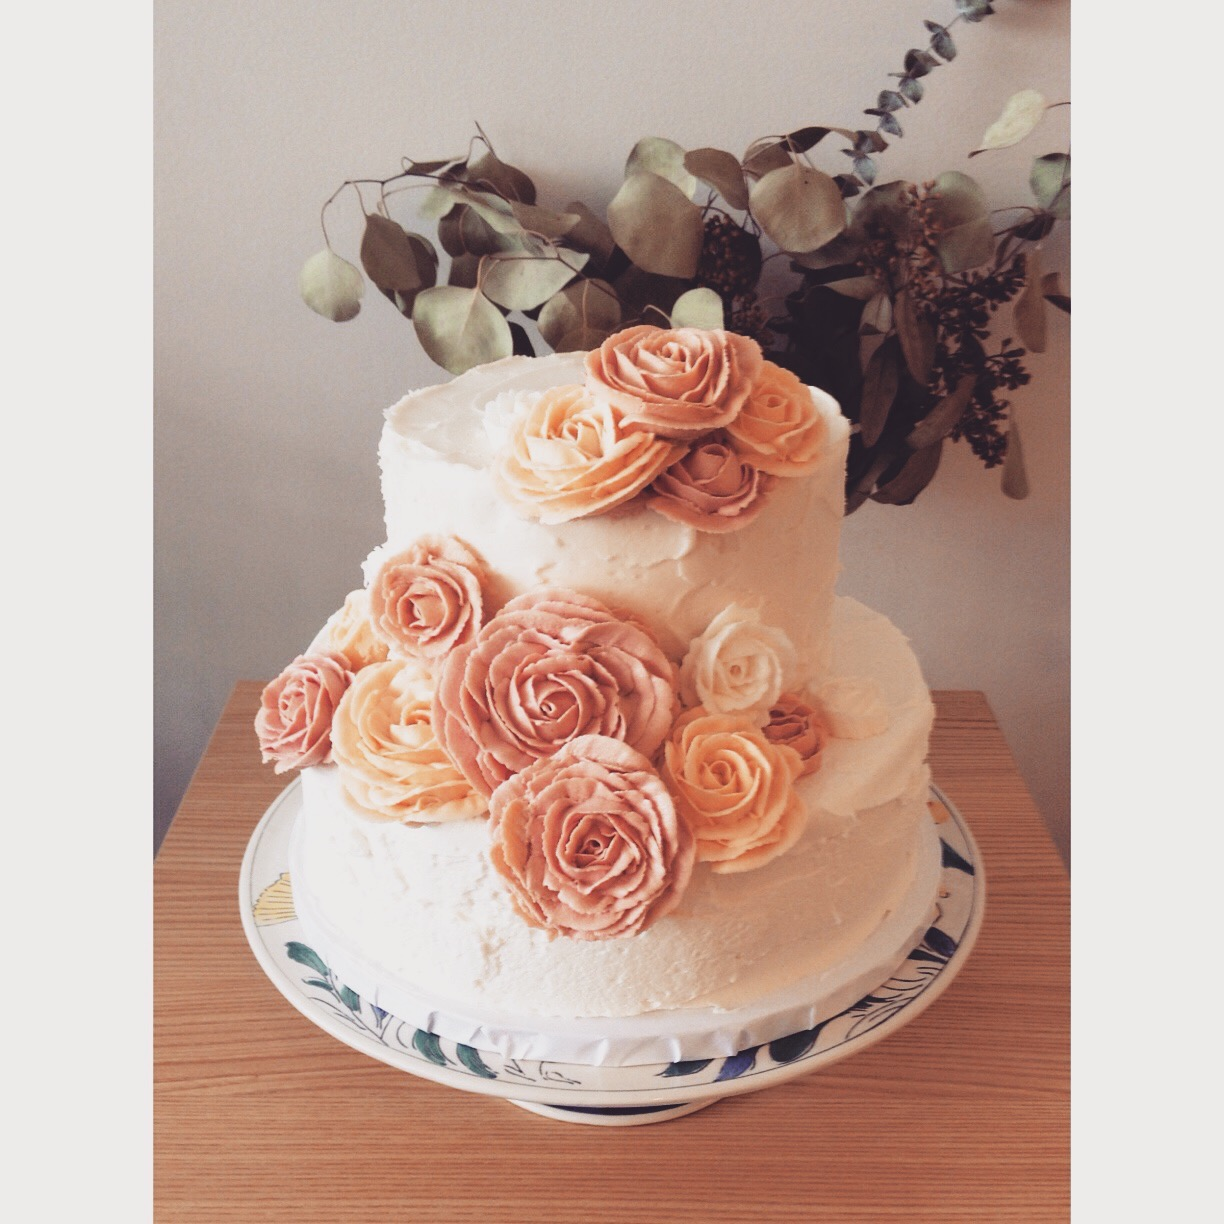 blush and pink buttercream rose wedding cake